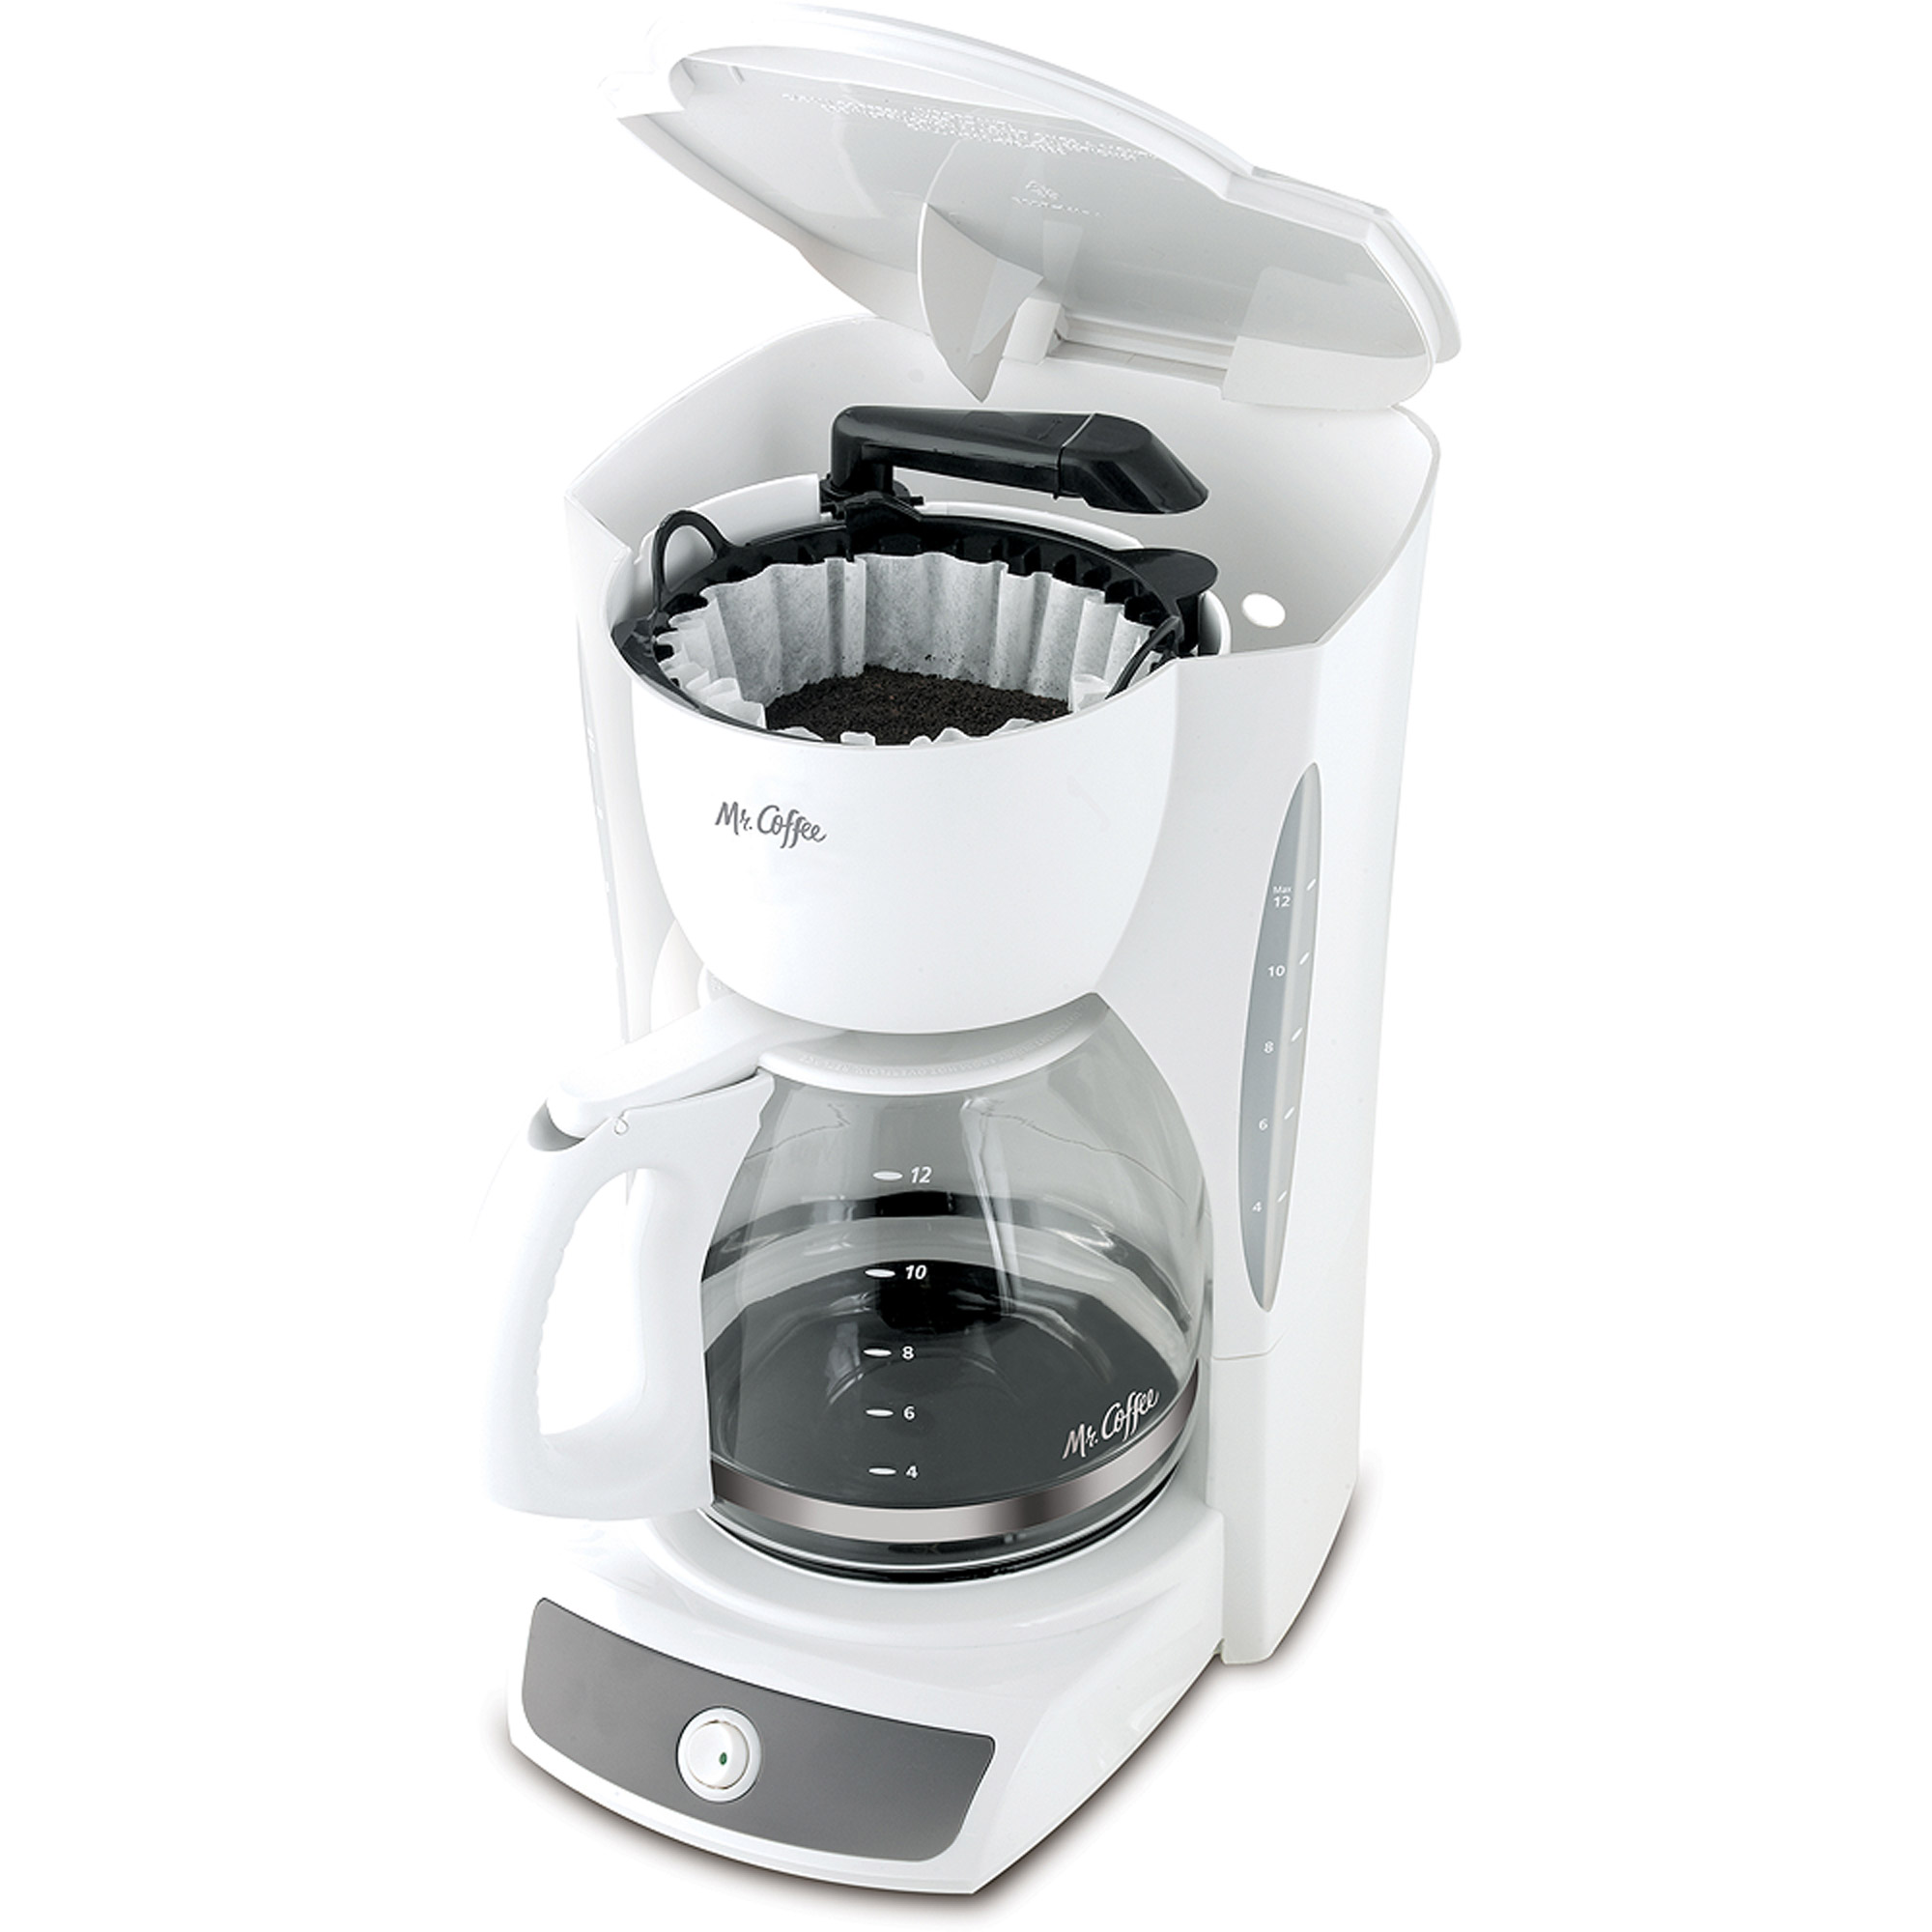 Coffee Maker Under 11 Inches Tall : Mr Coffee Under Cabinet Coffee Maker